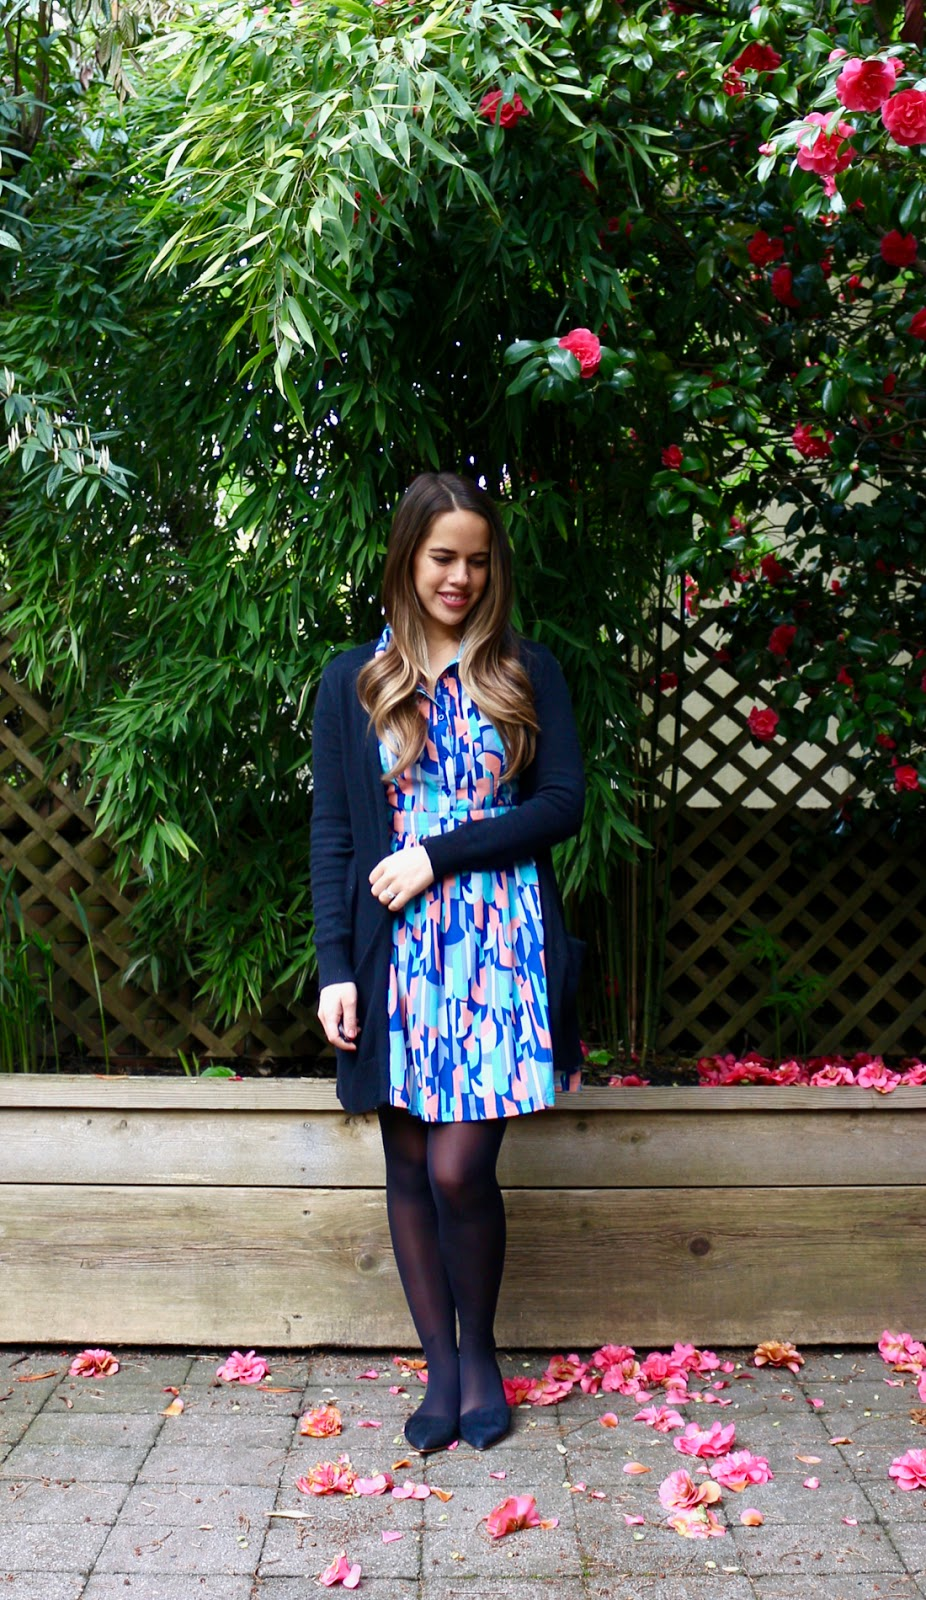 Jules in Flats - Collared Dress with Cardigan (Business Casual Spring Workwear on a Budget)